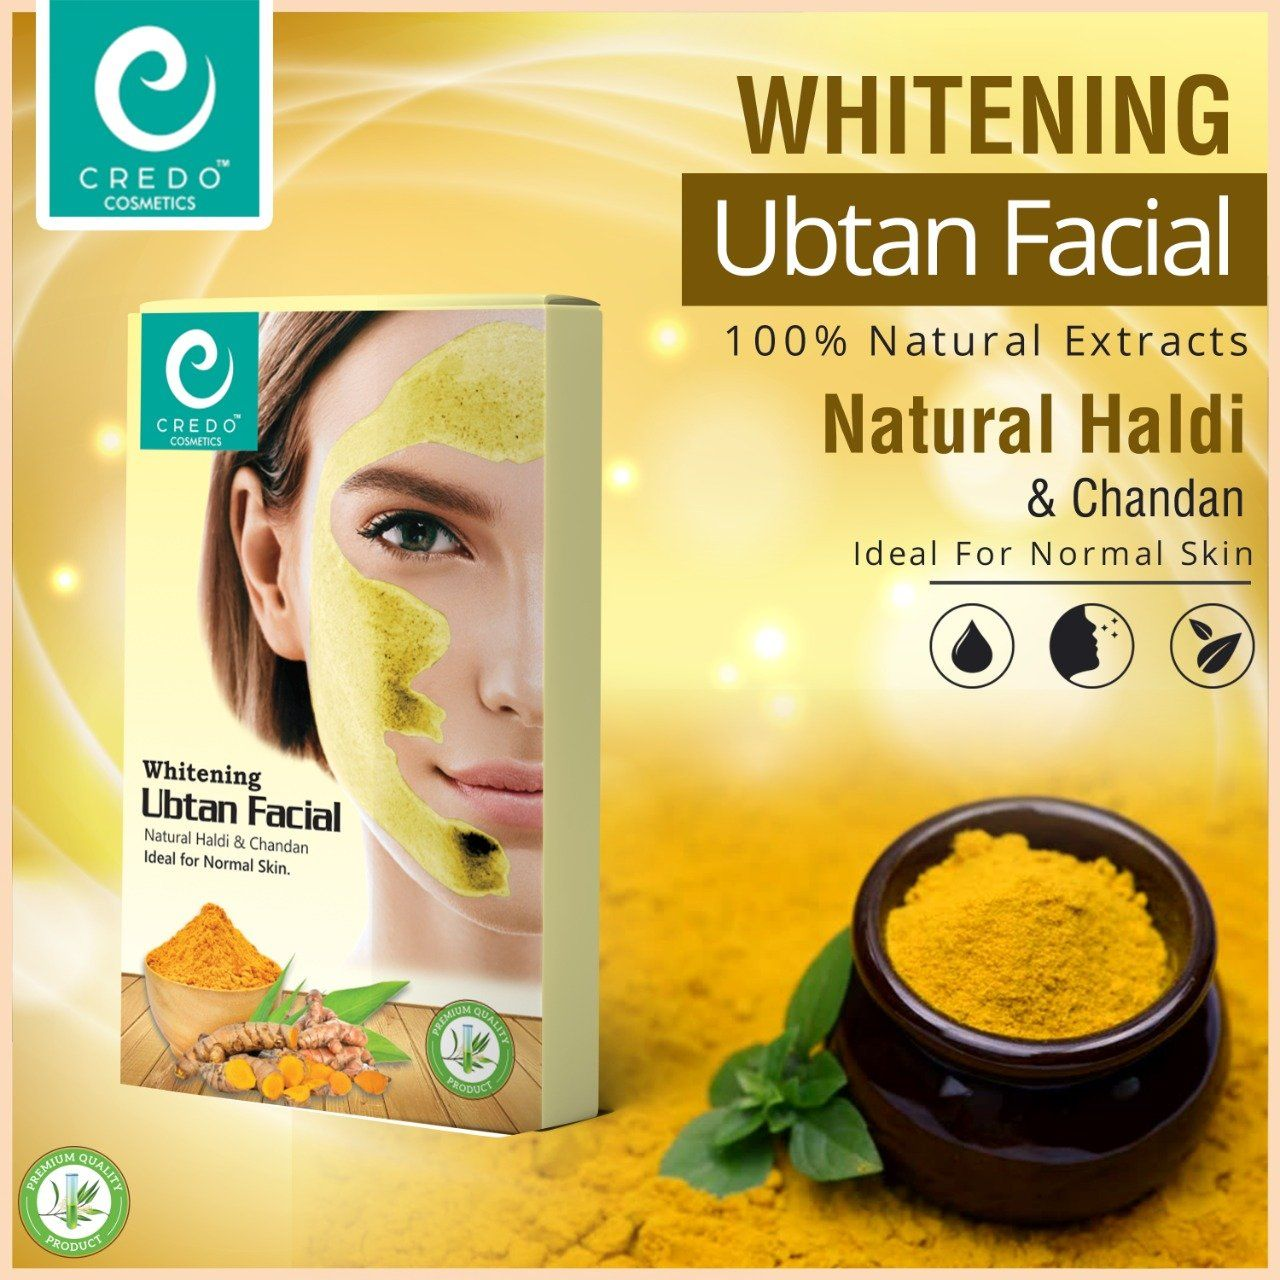 Credo Whitening Ubtan Facial Health & Beauty Credo Cosmetics